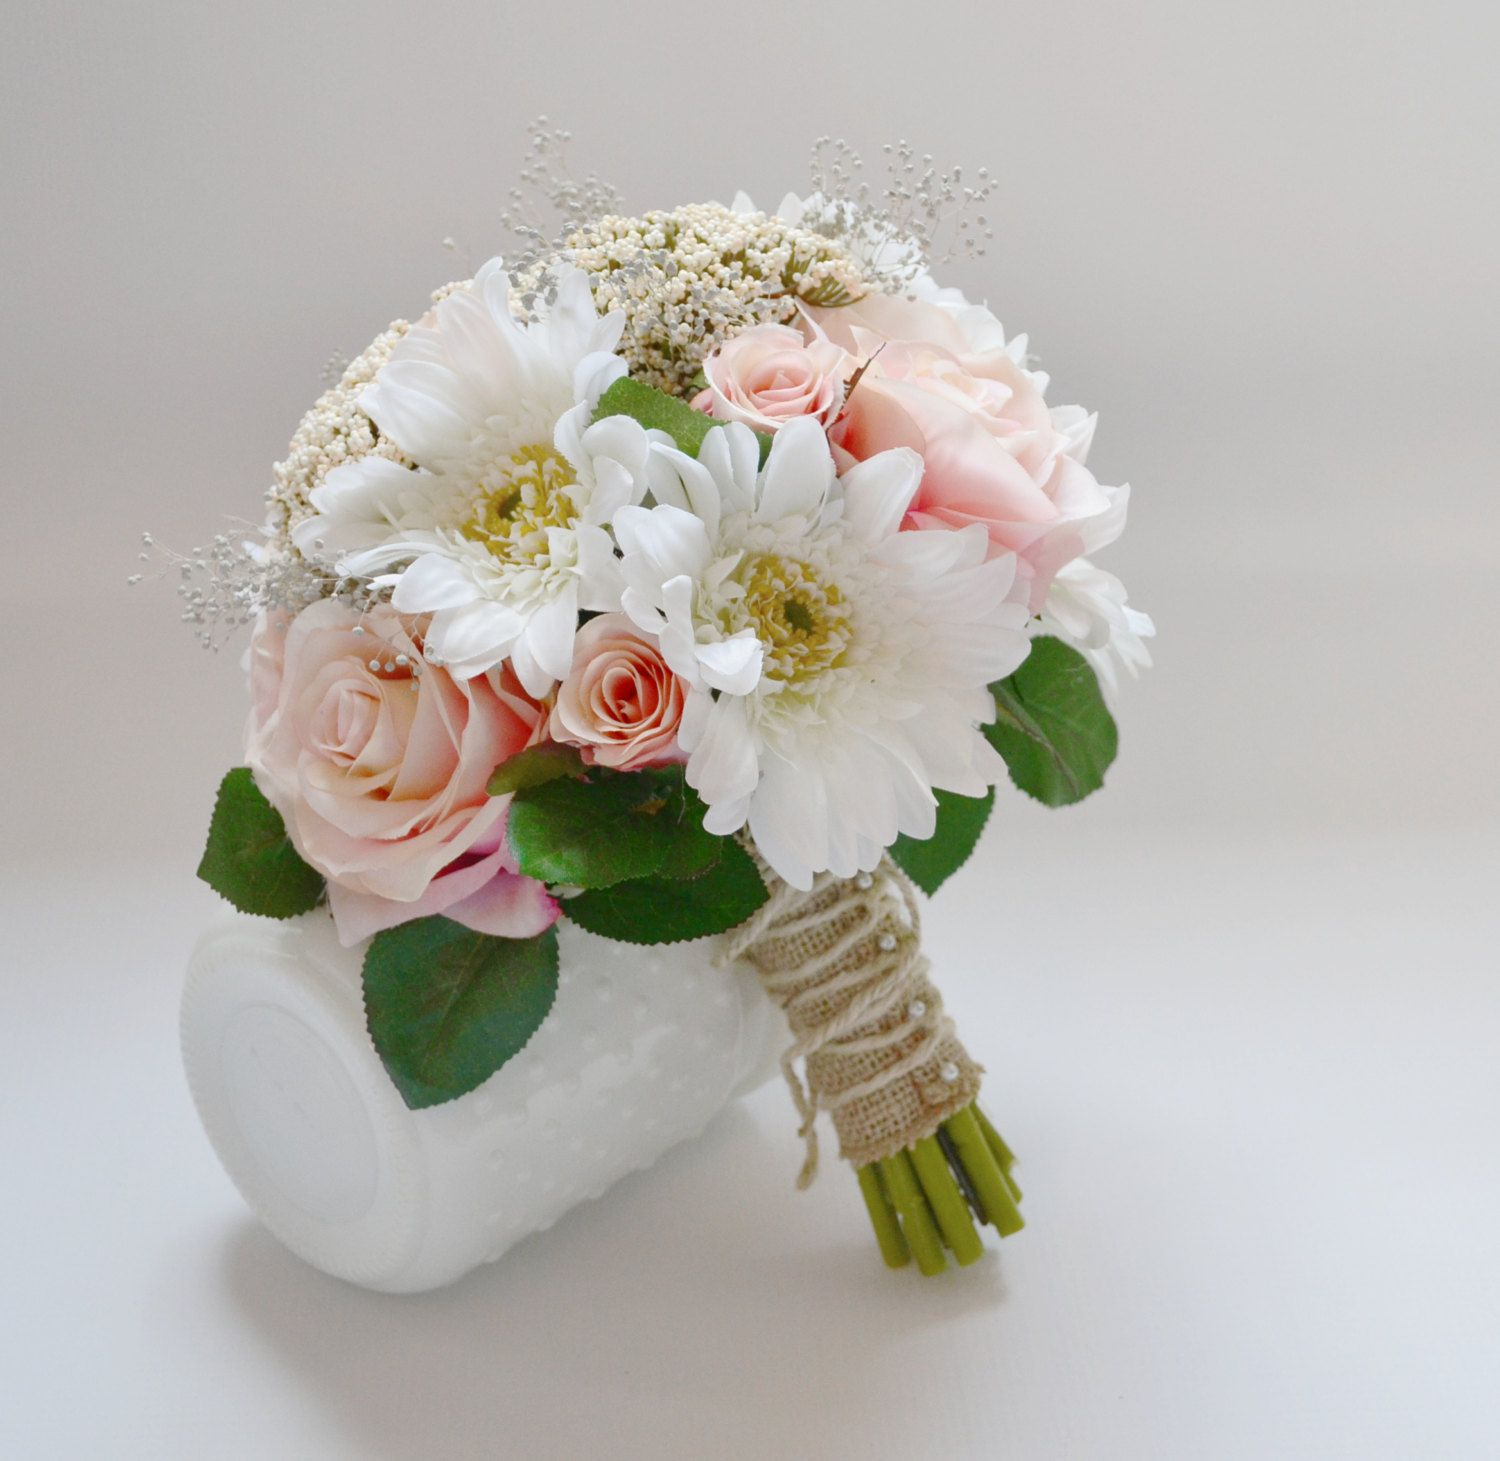 Wedding Bouquet Pink Roses Green Berries Leaves White Gerbera Daisies Queen Anne 39 Pink Rose Wedding Bouquet Boho Wedding Bouquet Daisy Bouquet Wedding